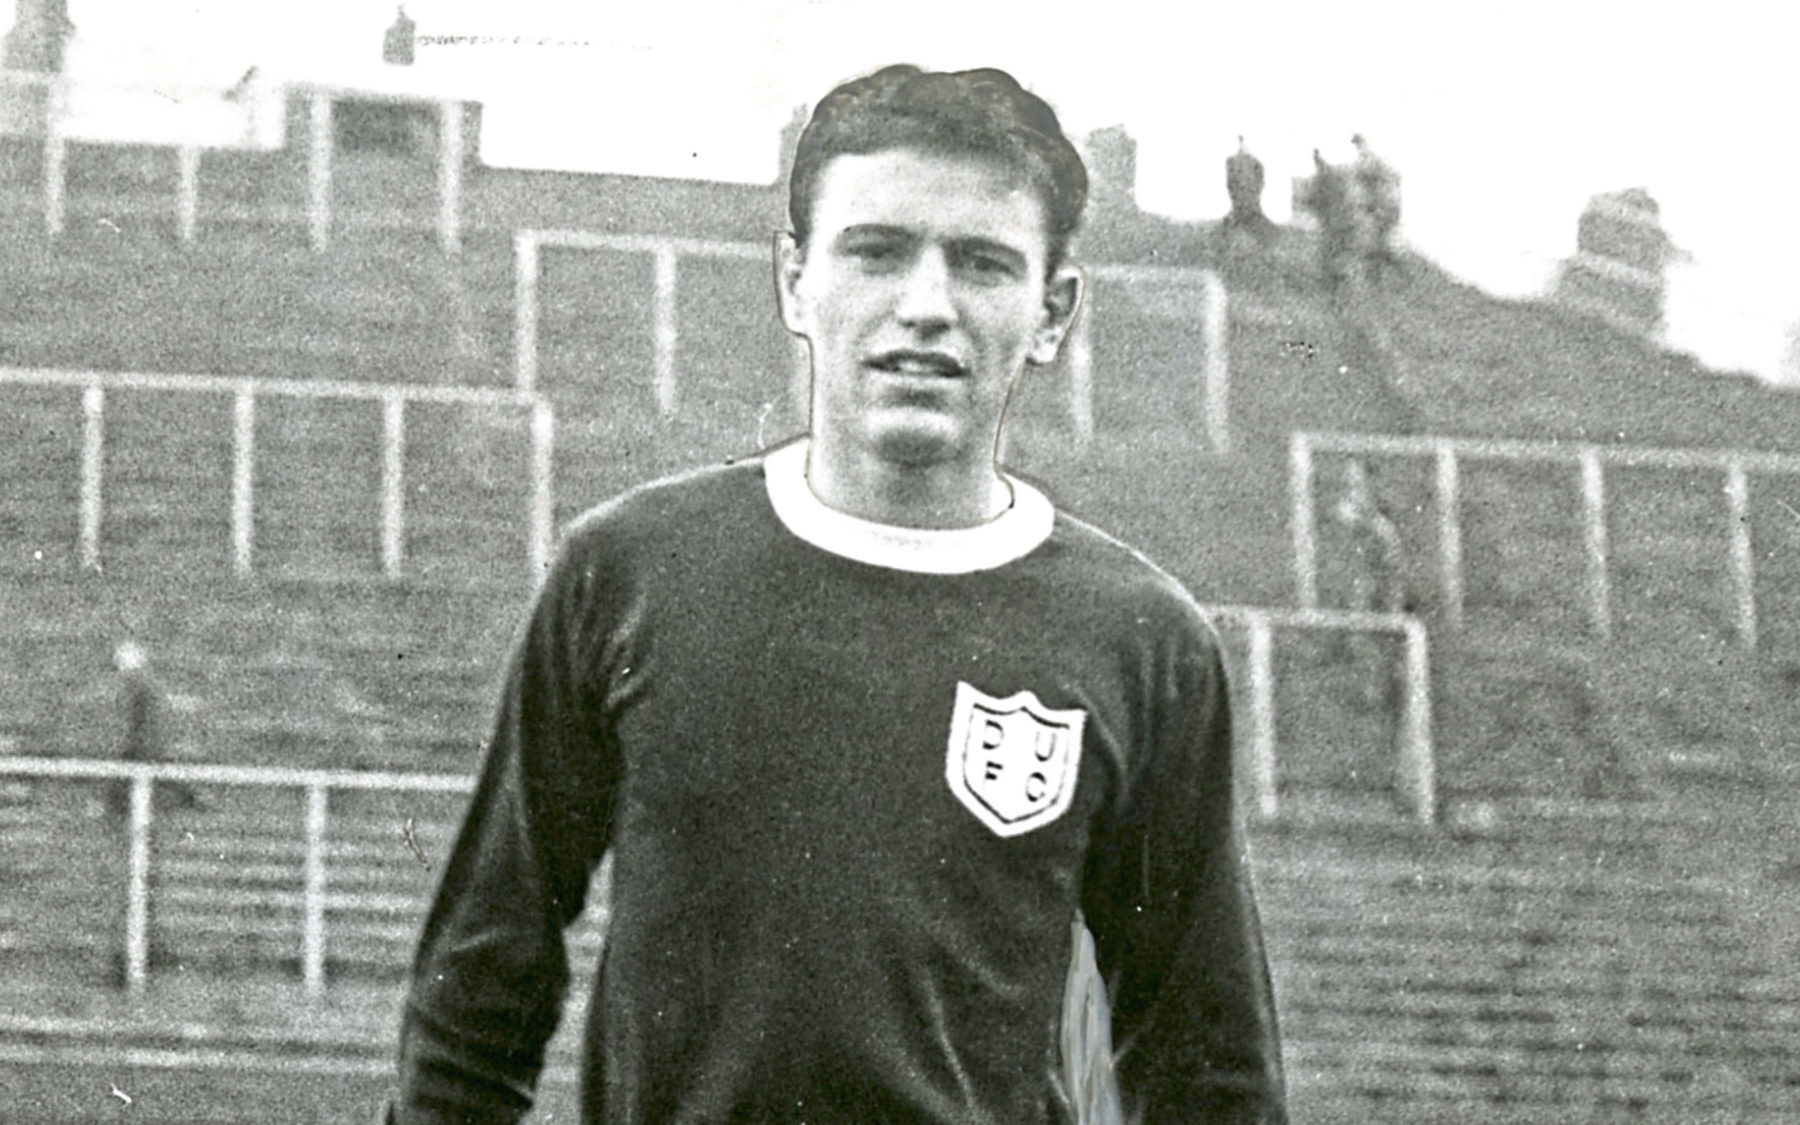 Kenny Dick pictured in 1964